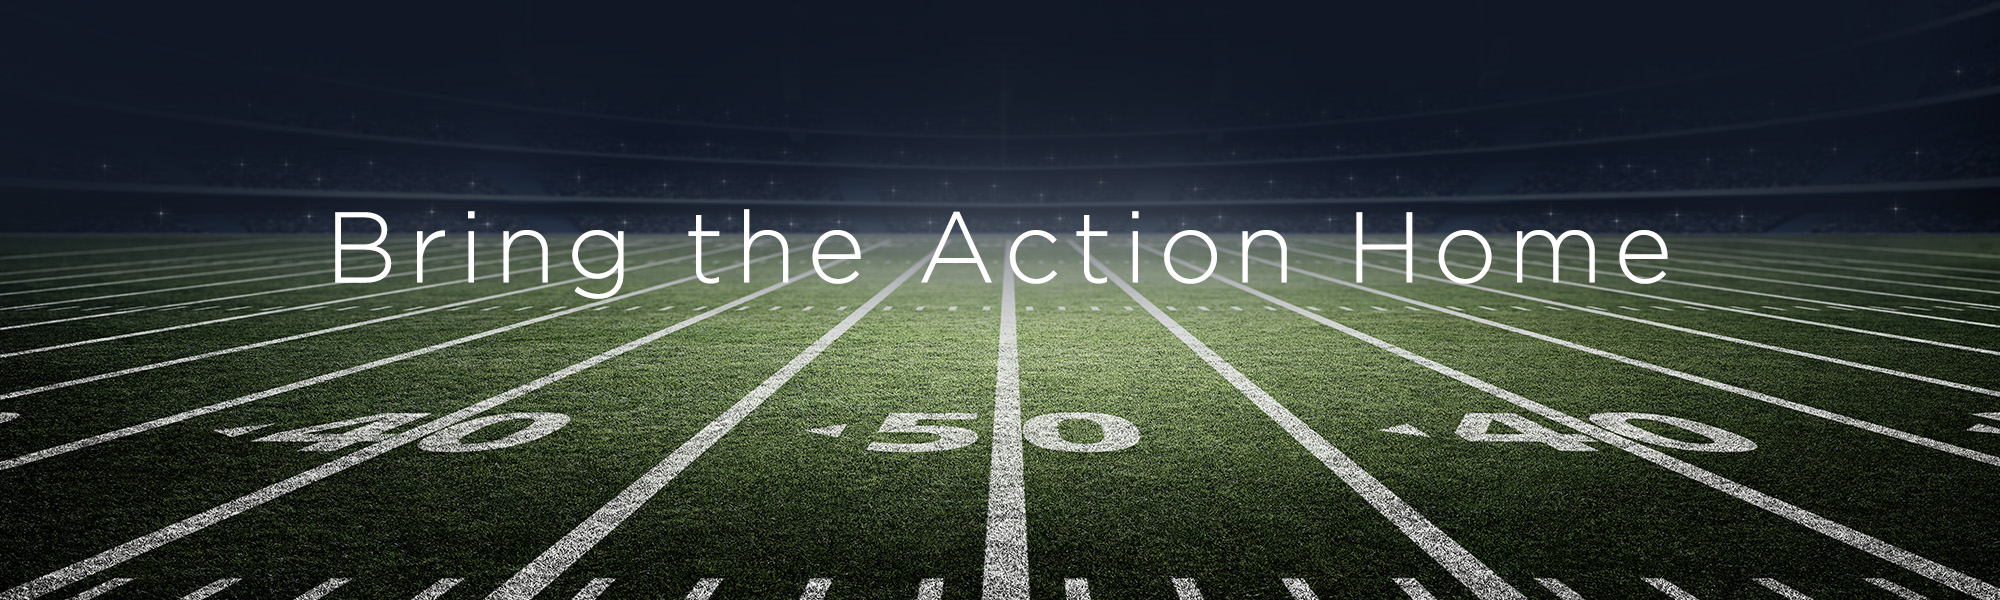 Bring the Action Home